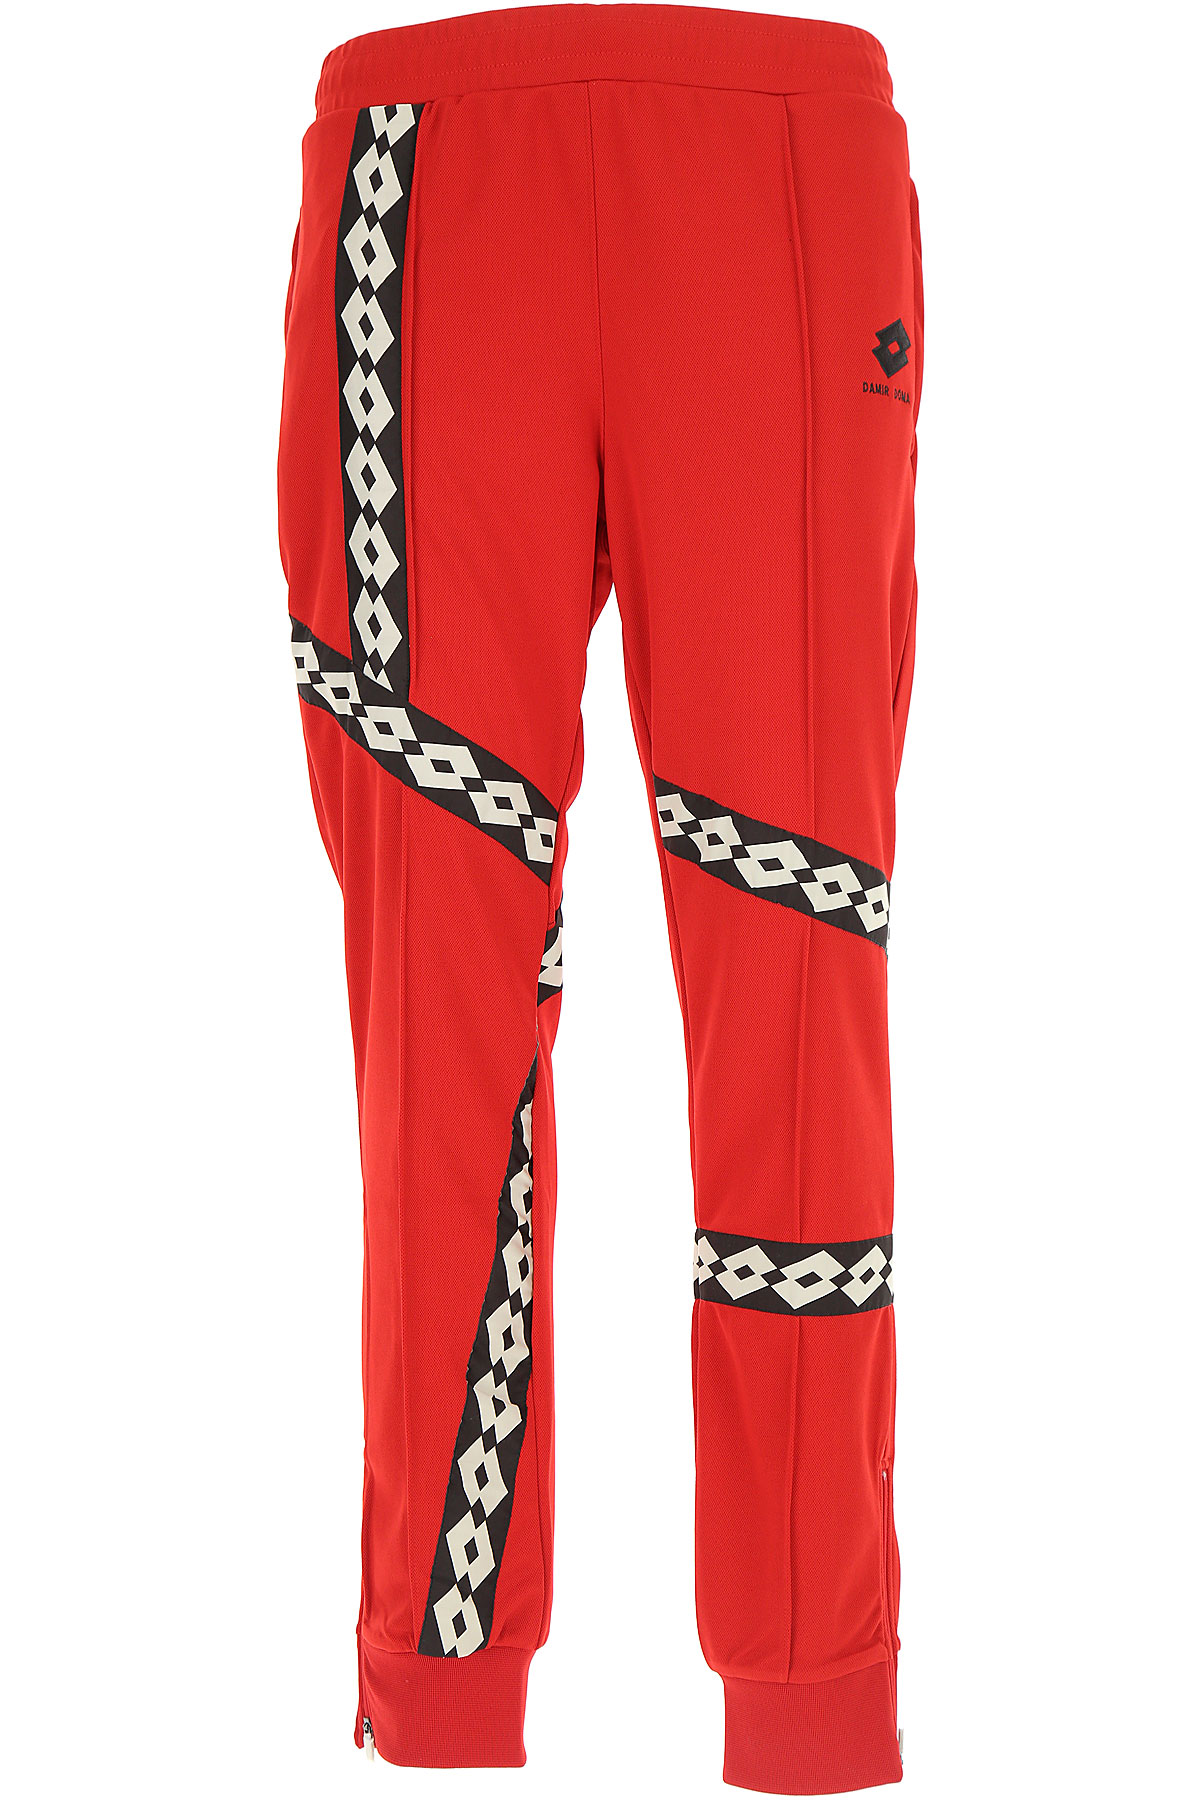 Image of Damir Doma Sweatpants, Red, polyester, 2017, L M S